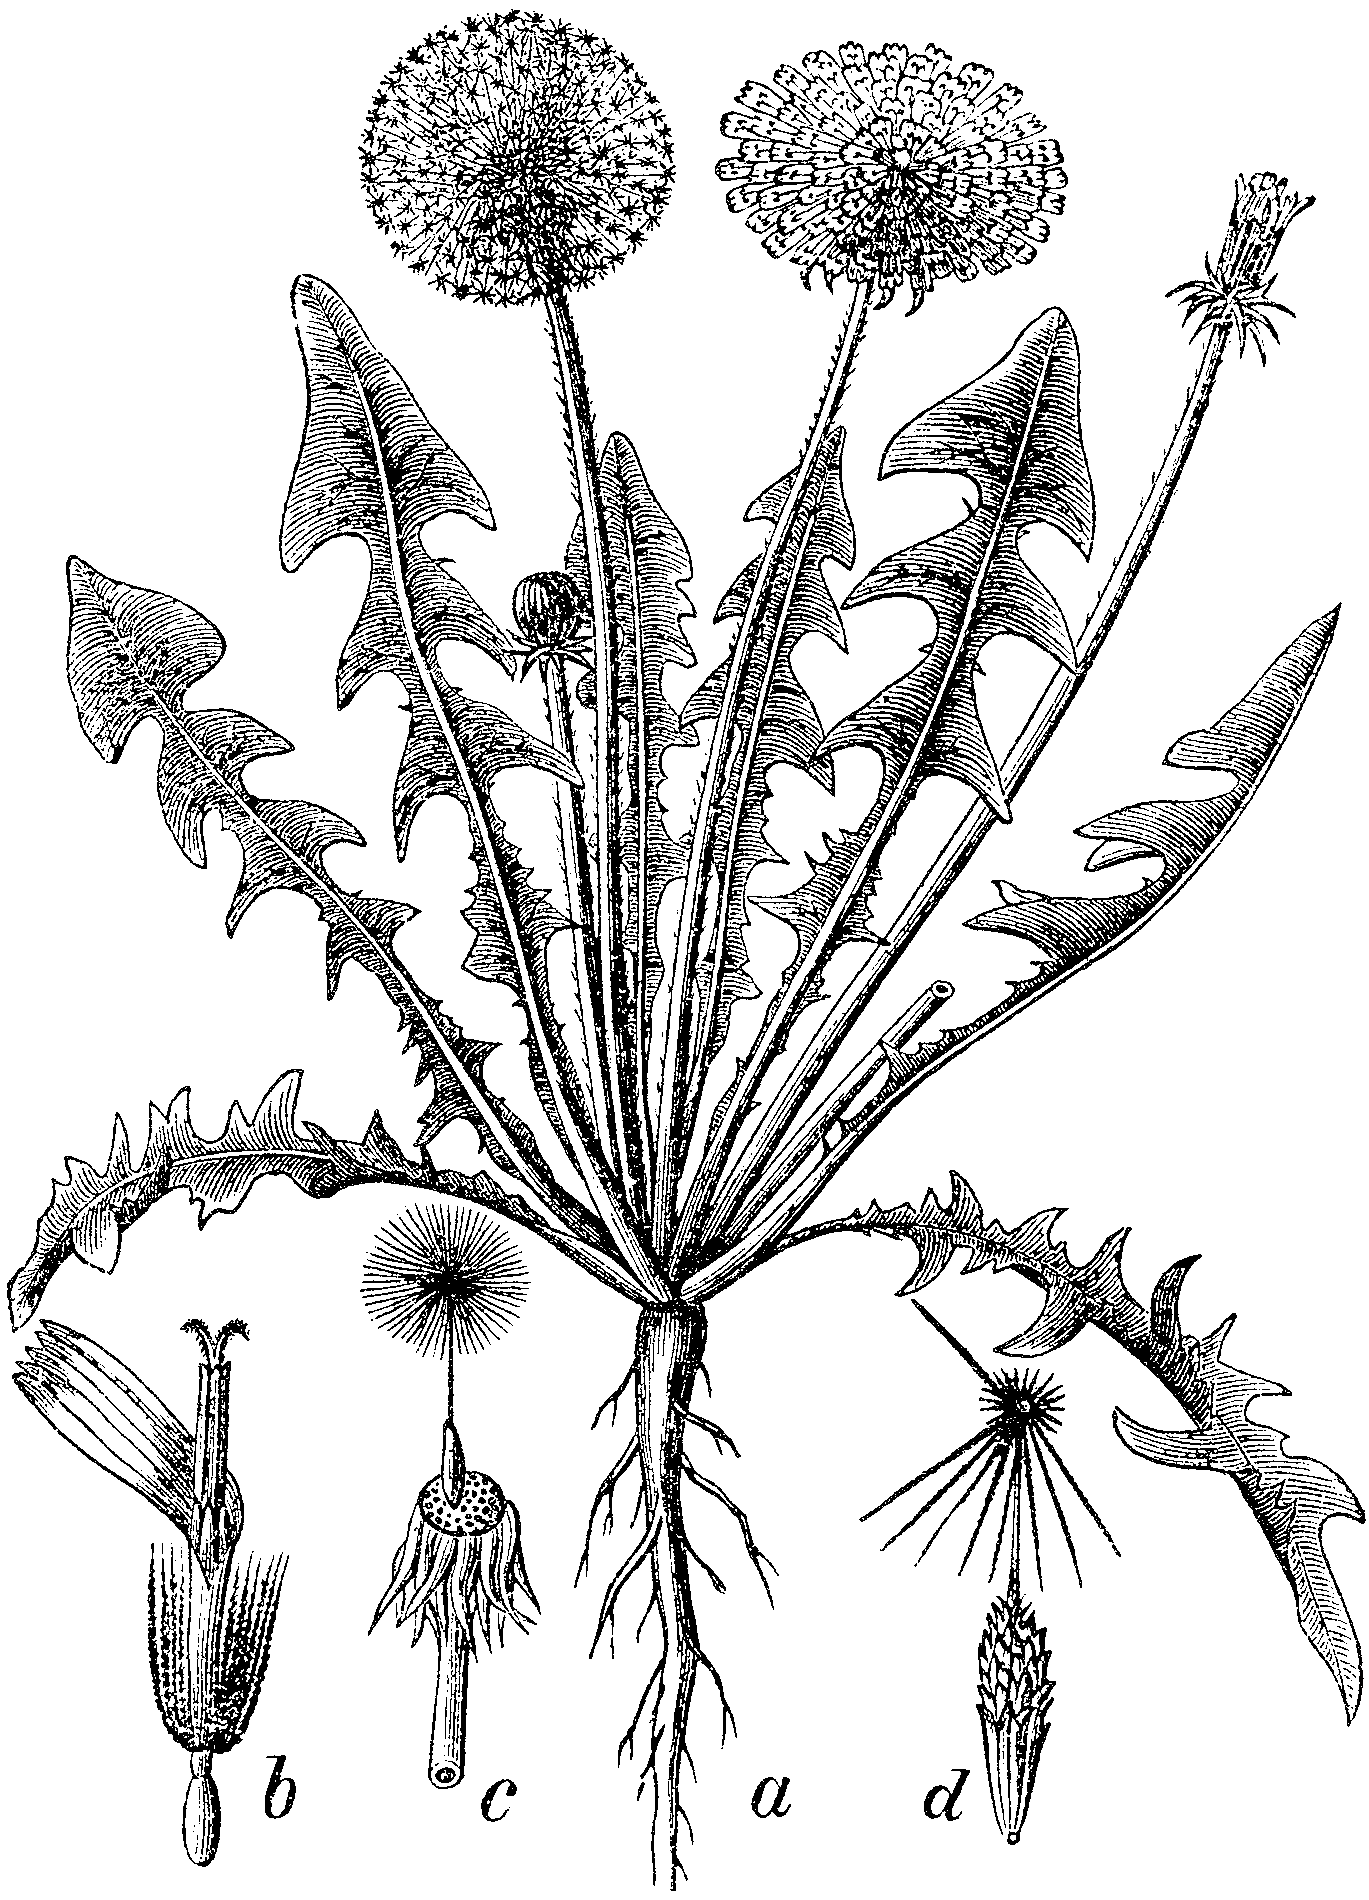 Black And White Drawing Of Dandelion Leaf And Flower